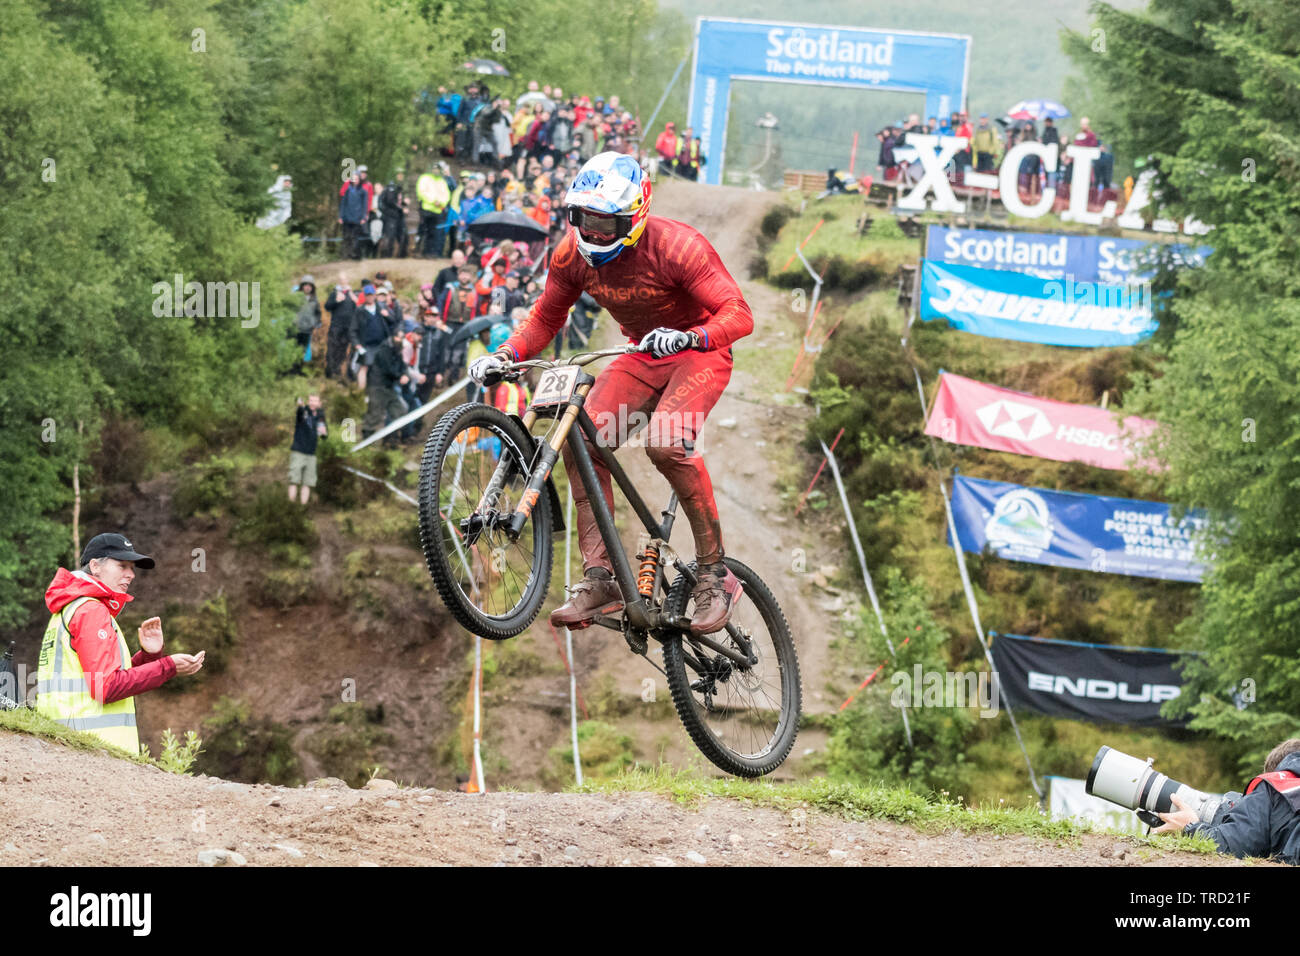 Gee Atherton racing in the UCI Mountain Bike World Cup 2019 Stage 2 elite men's final, Fort William, Scotland, UK - Stock Image